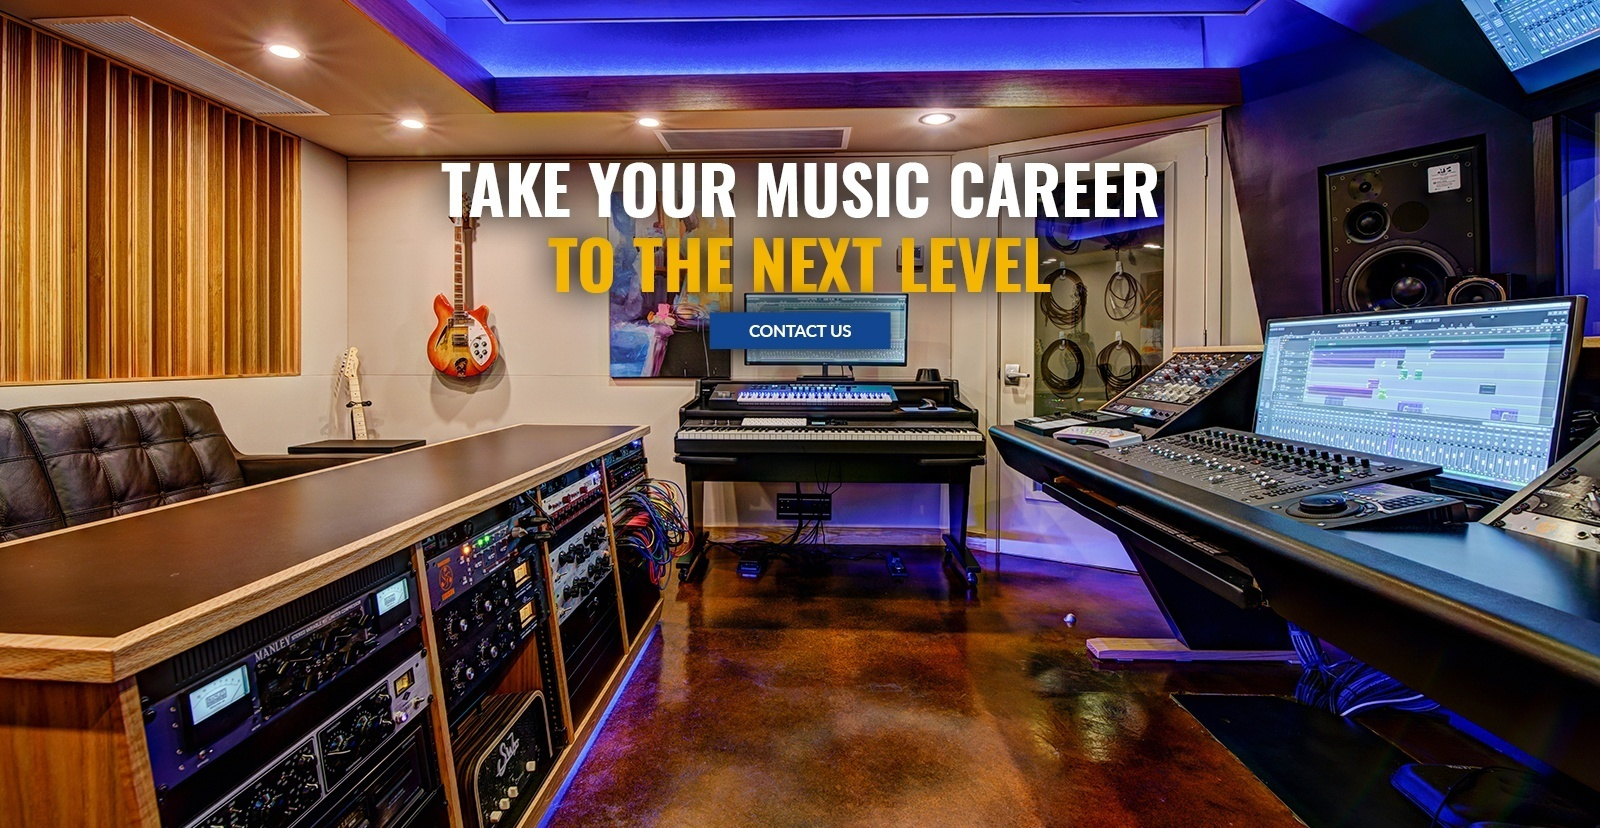 Music Production Services Annandale by Innovation Station Music - Recording Studio VA